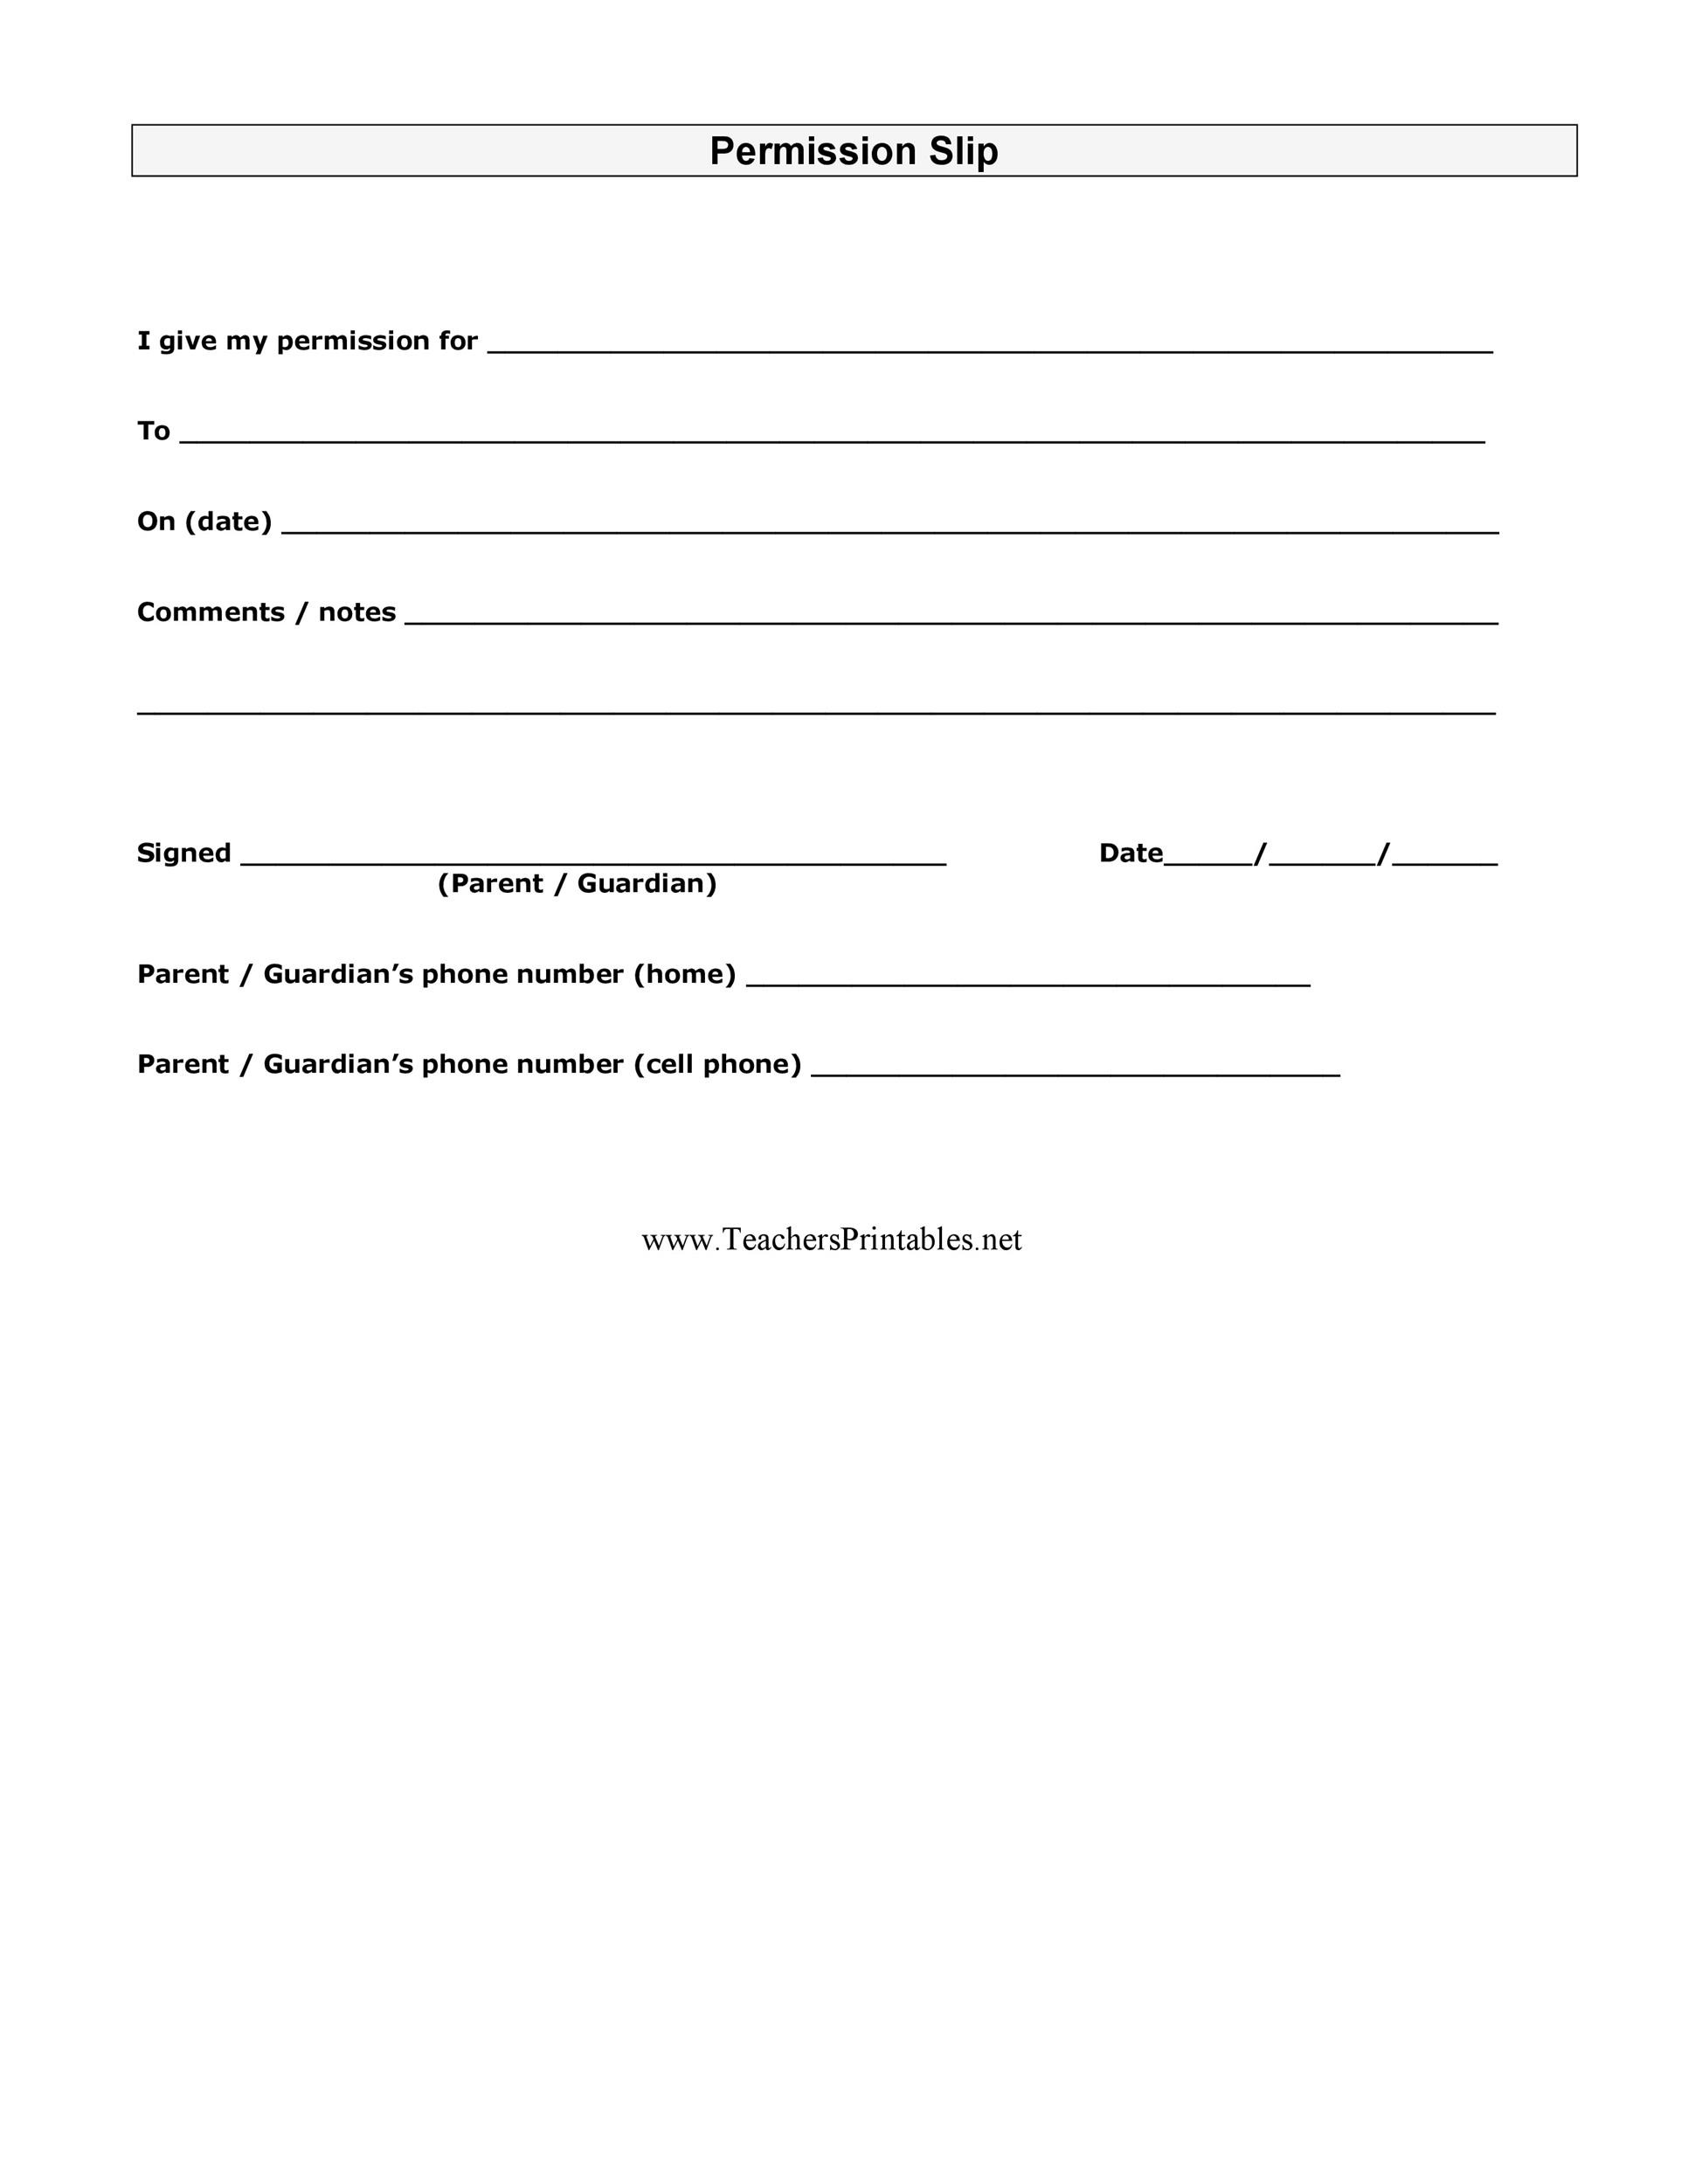 35 permission slip templates field trip forms printable permission slip 07 altavistaventures